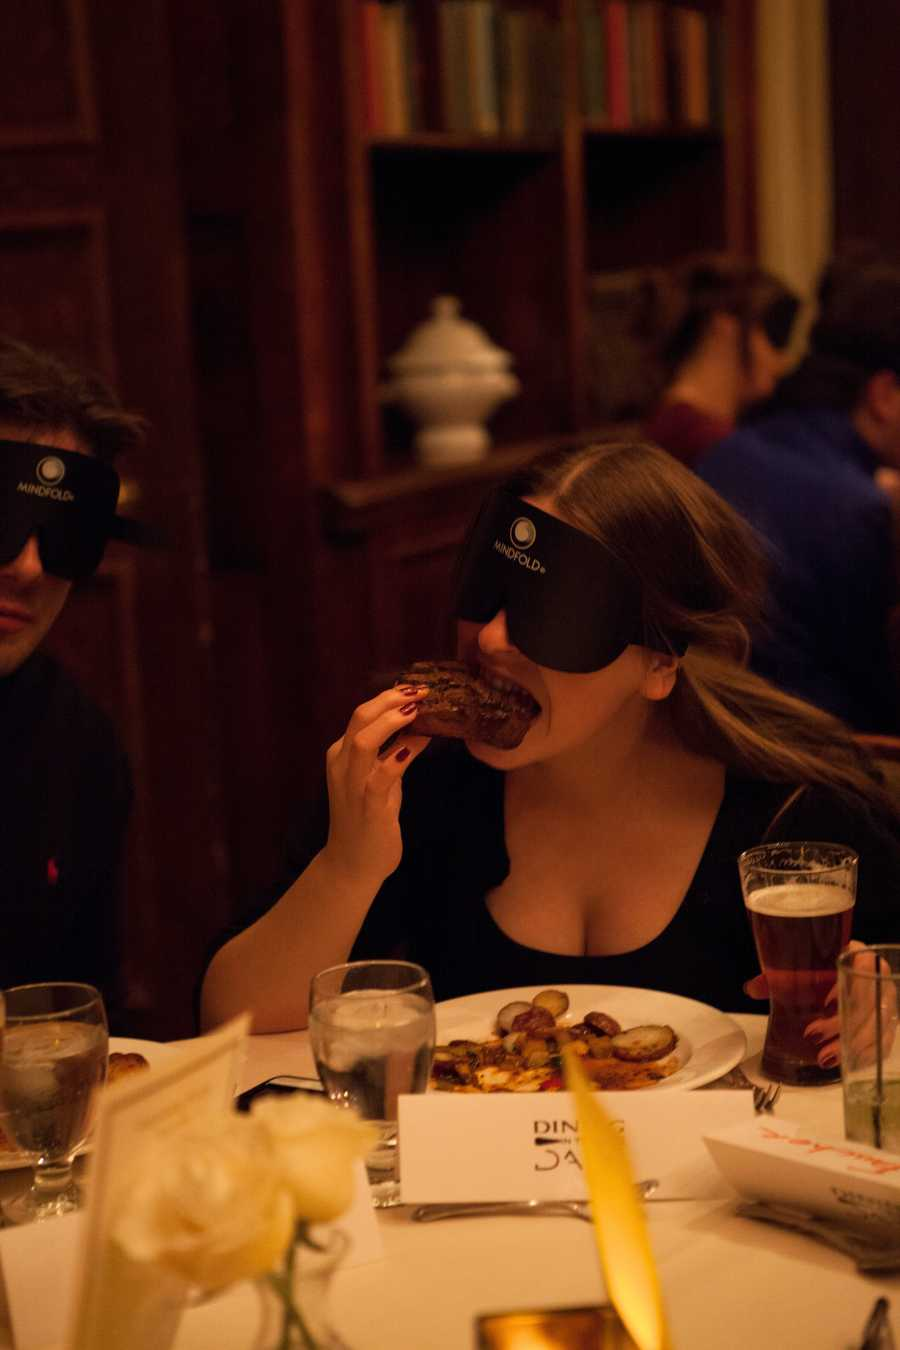 """A guest uses her hand to eat steak. """"Everyone is blindfolded and acting the same way. No one thinks you are foolish,"""" said Ripperger."""